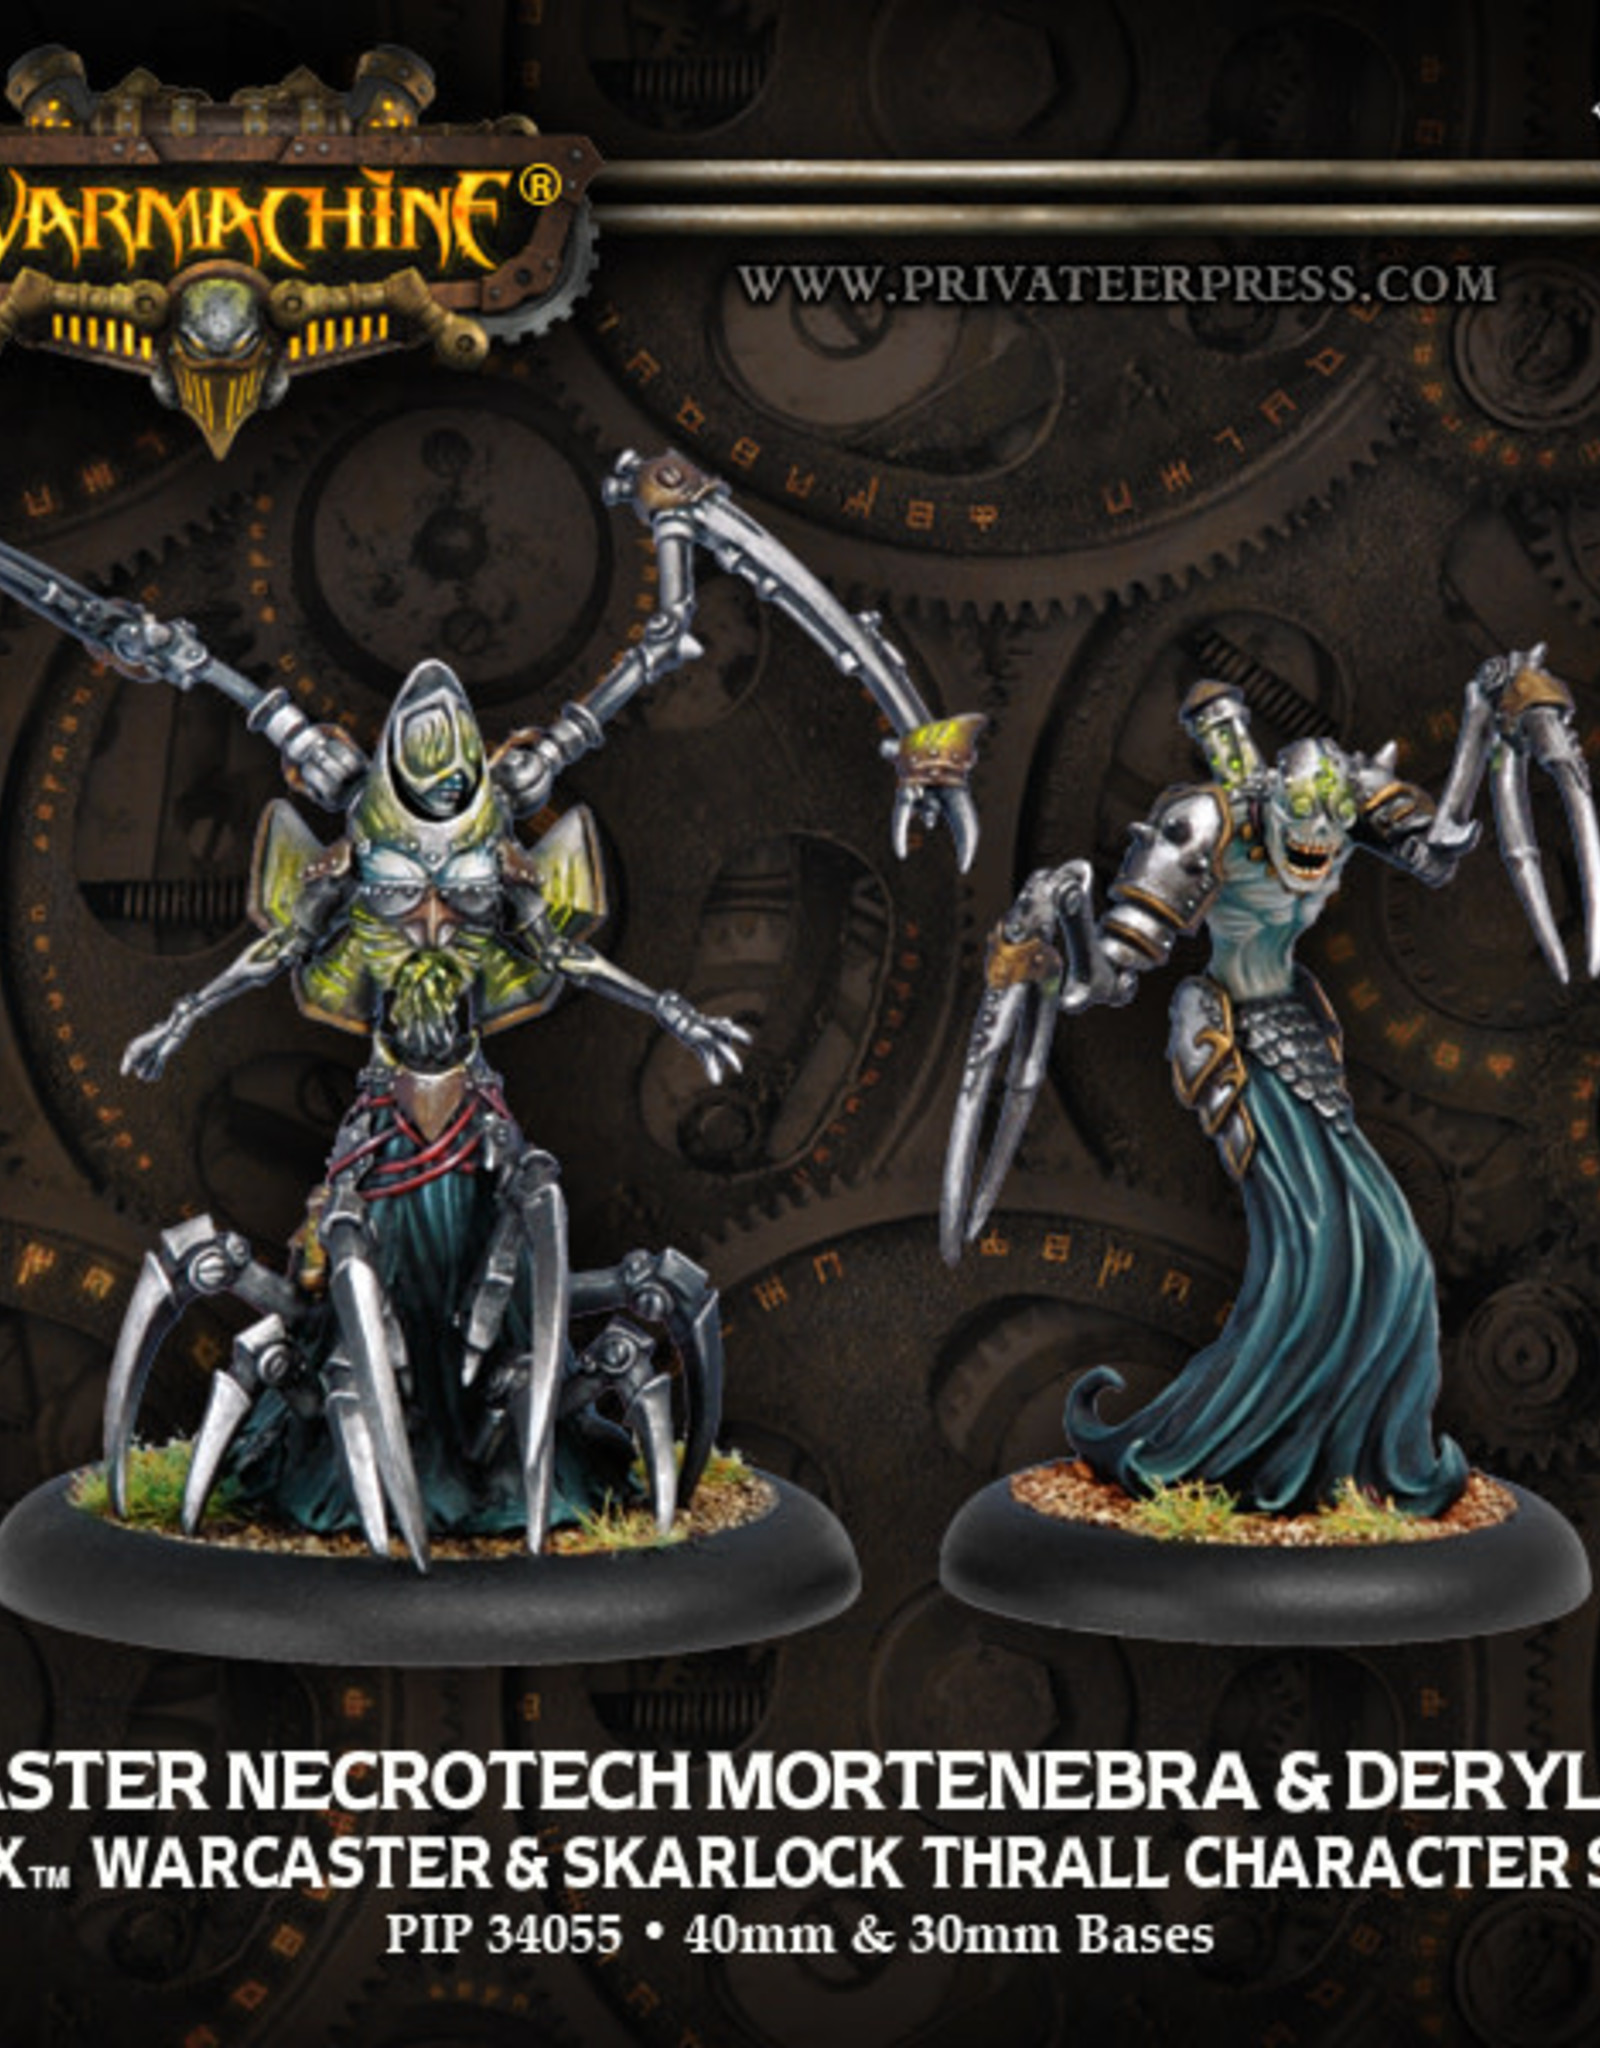 Warmachine Cryx - Mortenebra